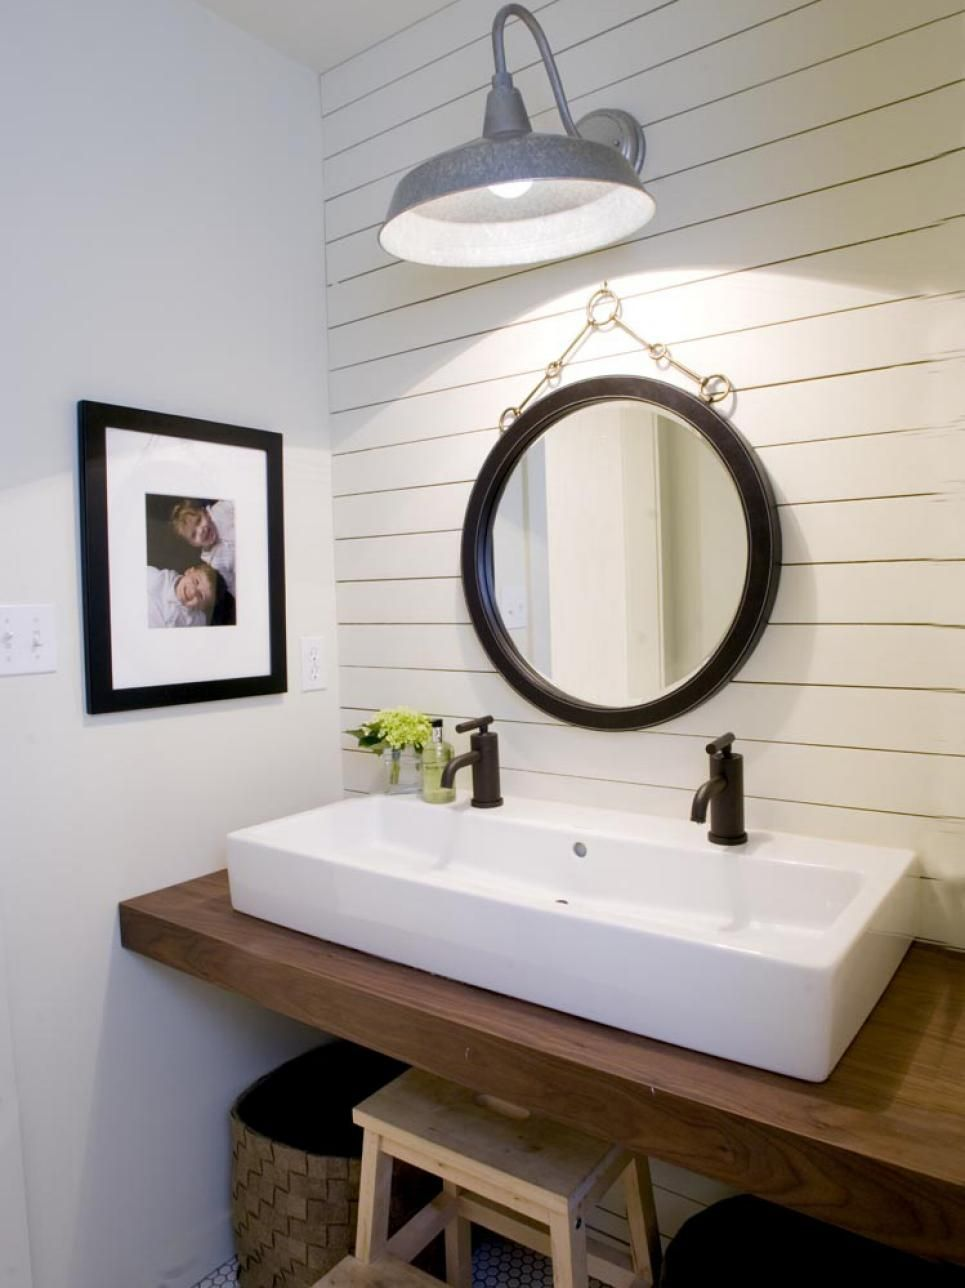 Stylish Bathroom Updates | Trough sink, Modern farmhouse and Faucet